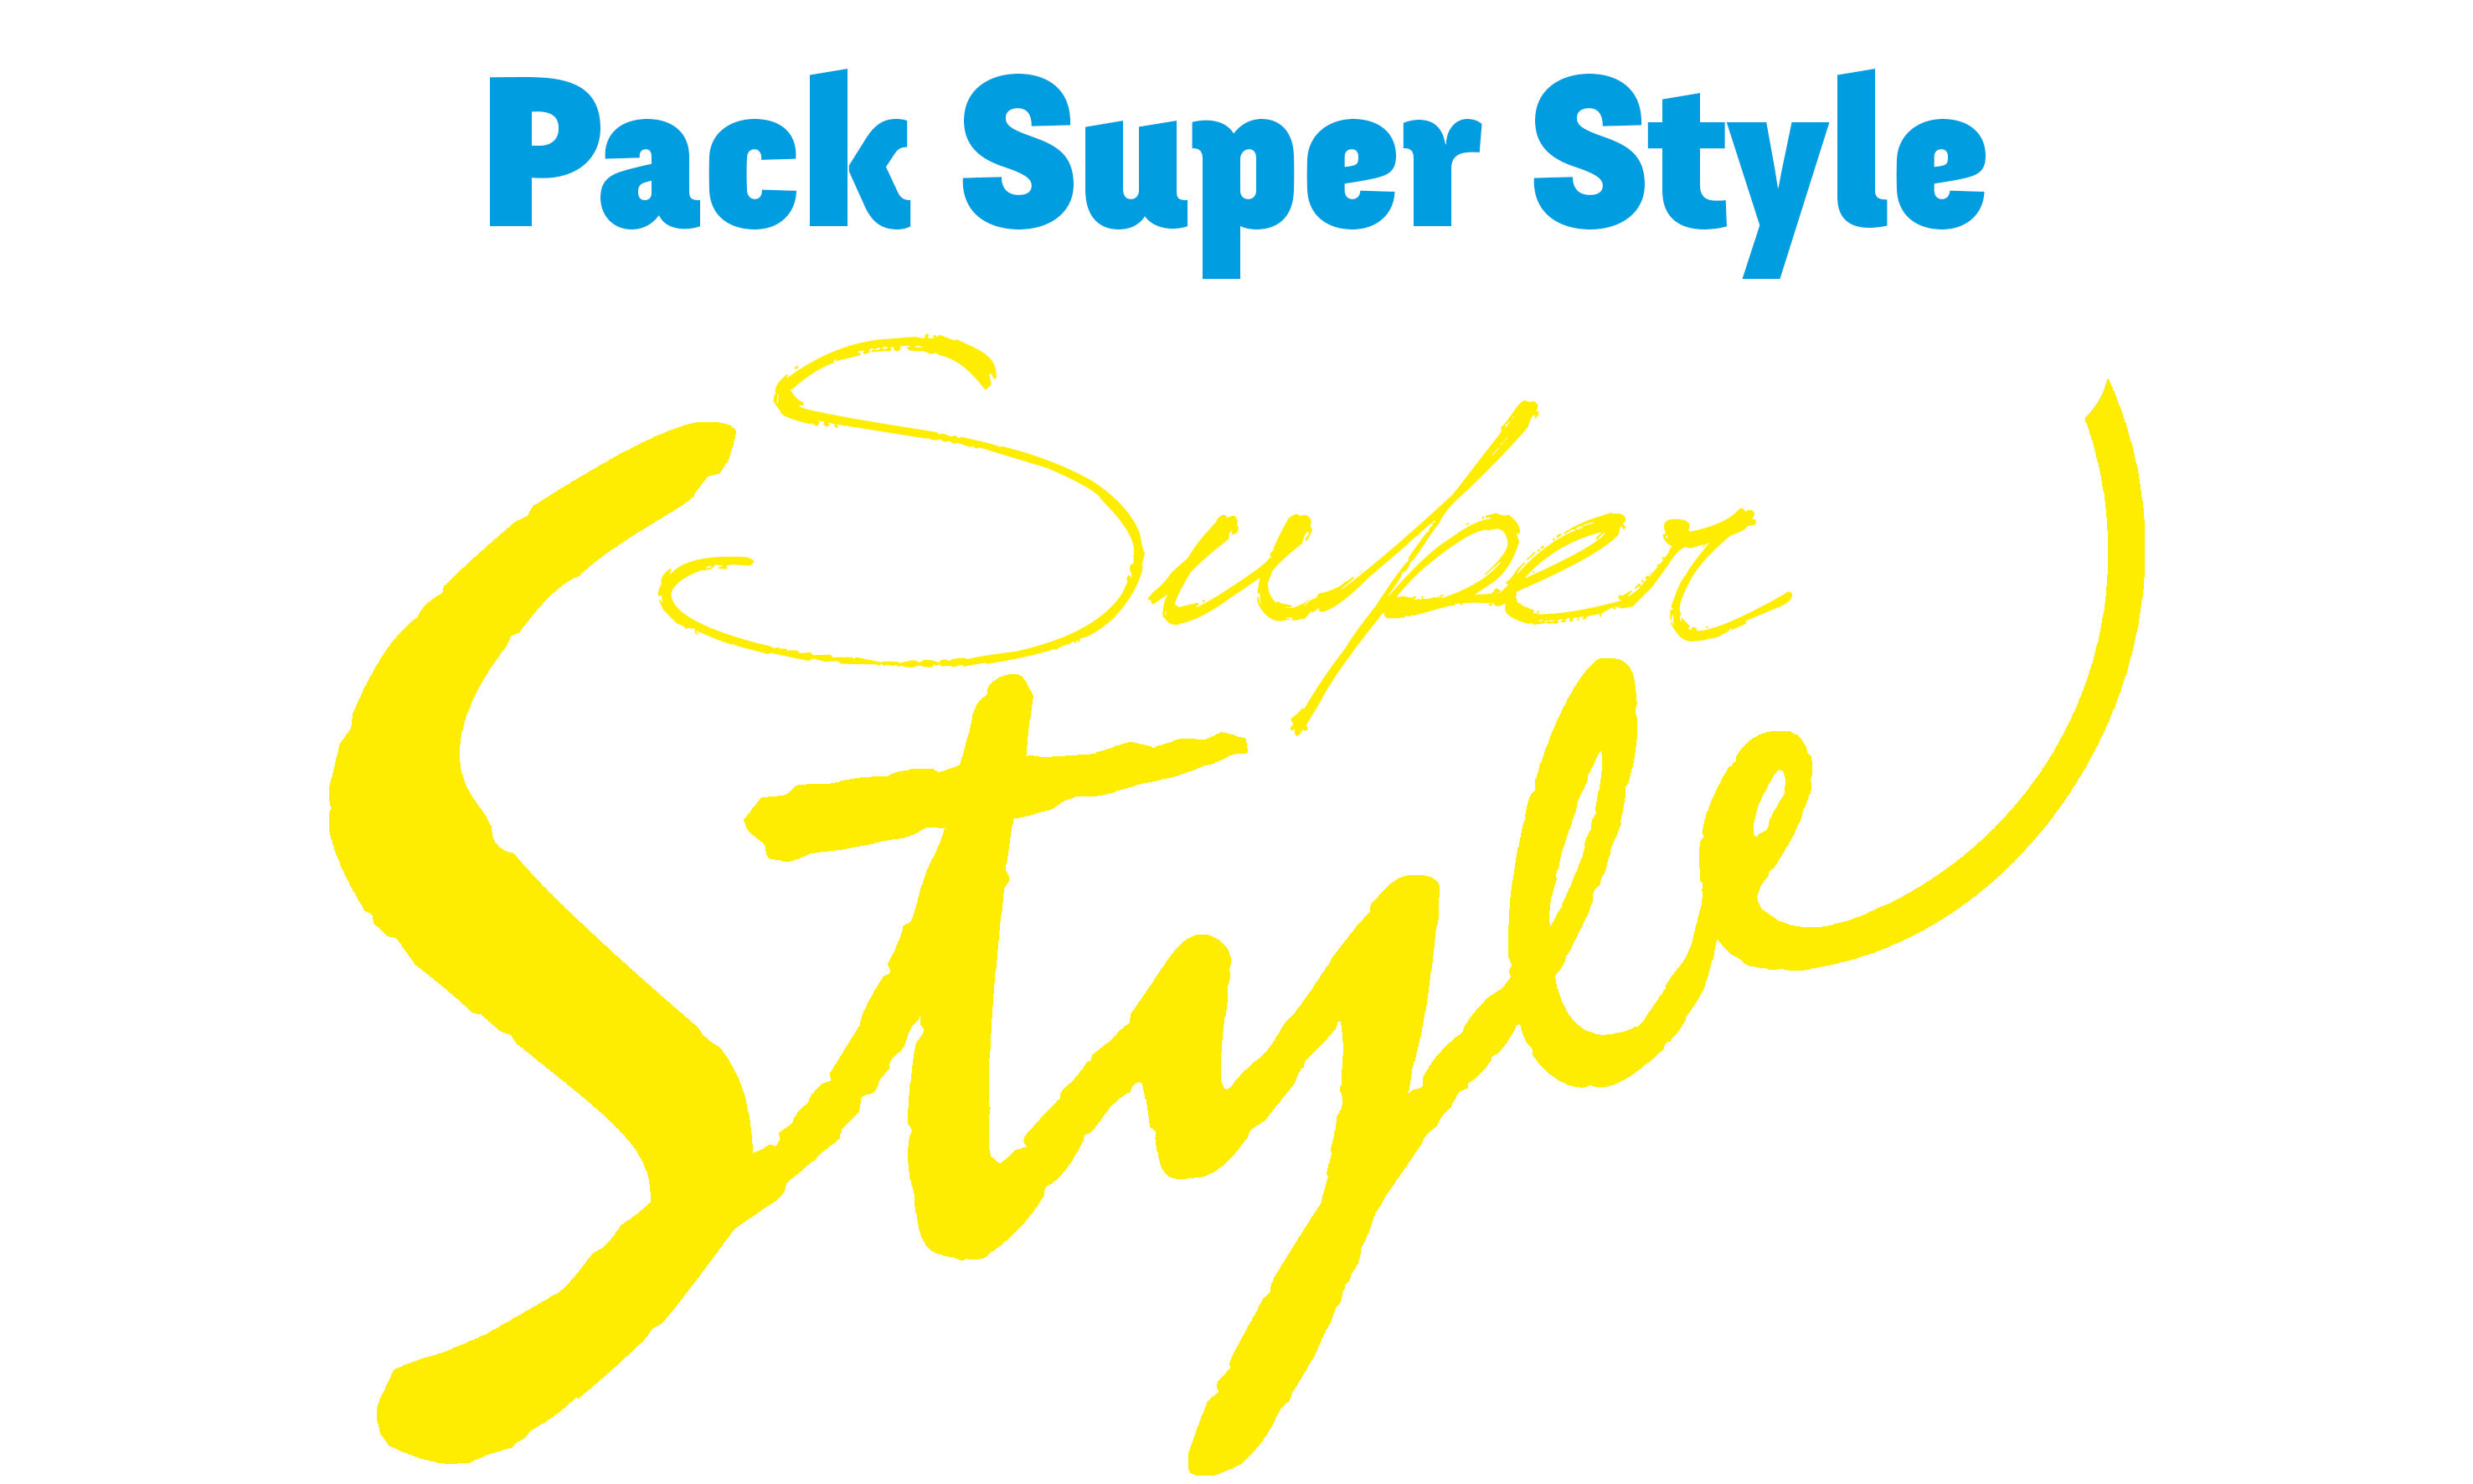 Pack_Super_Style-1464602821.png